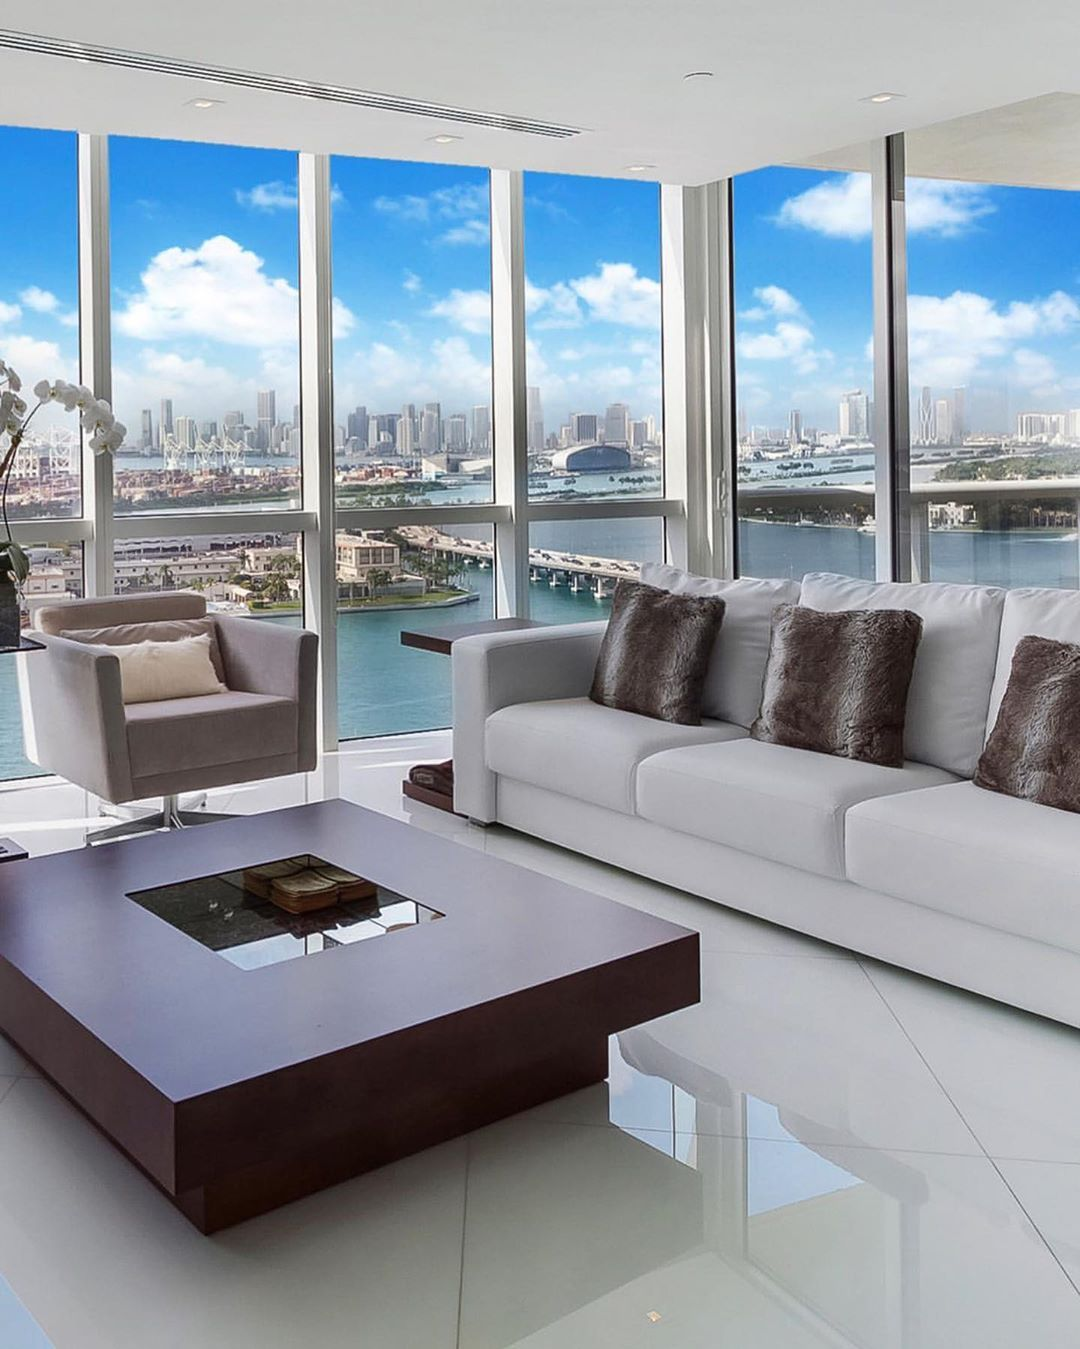 Luxury Homes On Instagram Awesome This Amazing Miami Condo Is Like A Window Onto The World Outside Listed By Miami Miami Condo Luxury Homes Apartment View